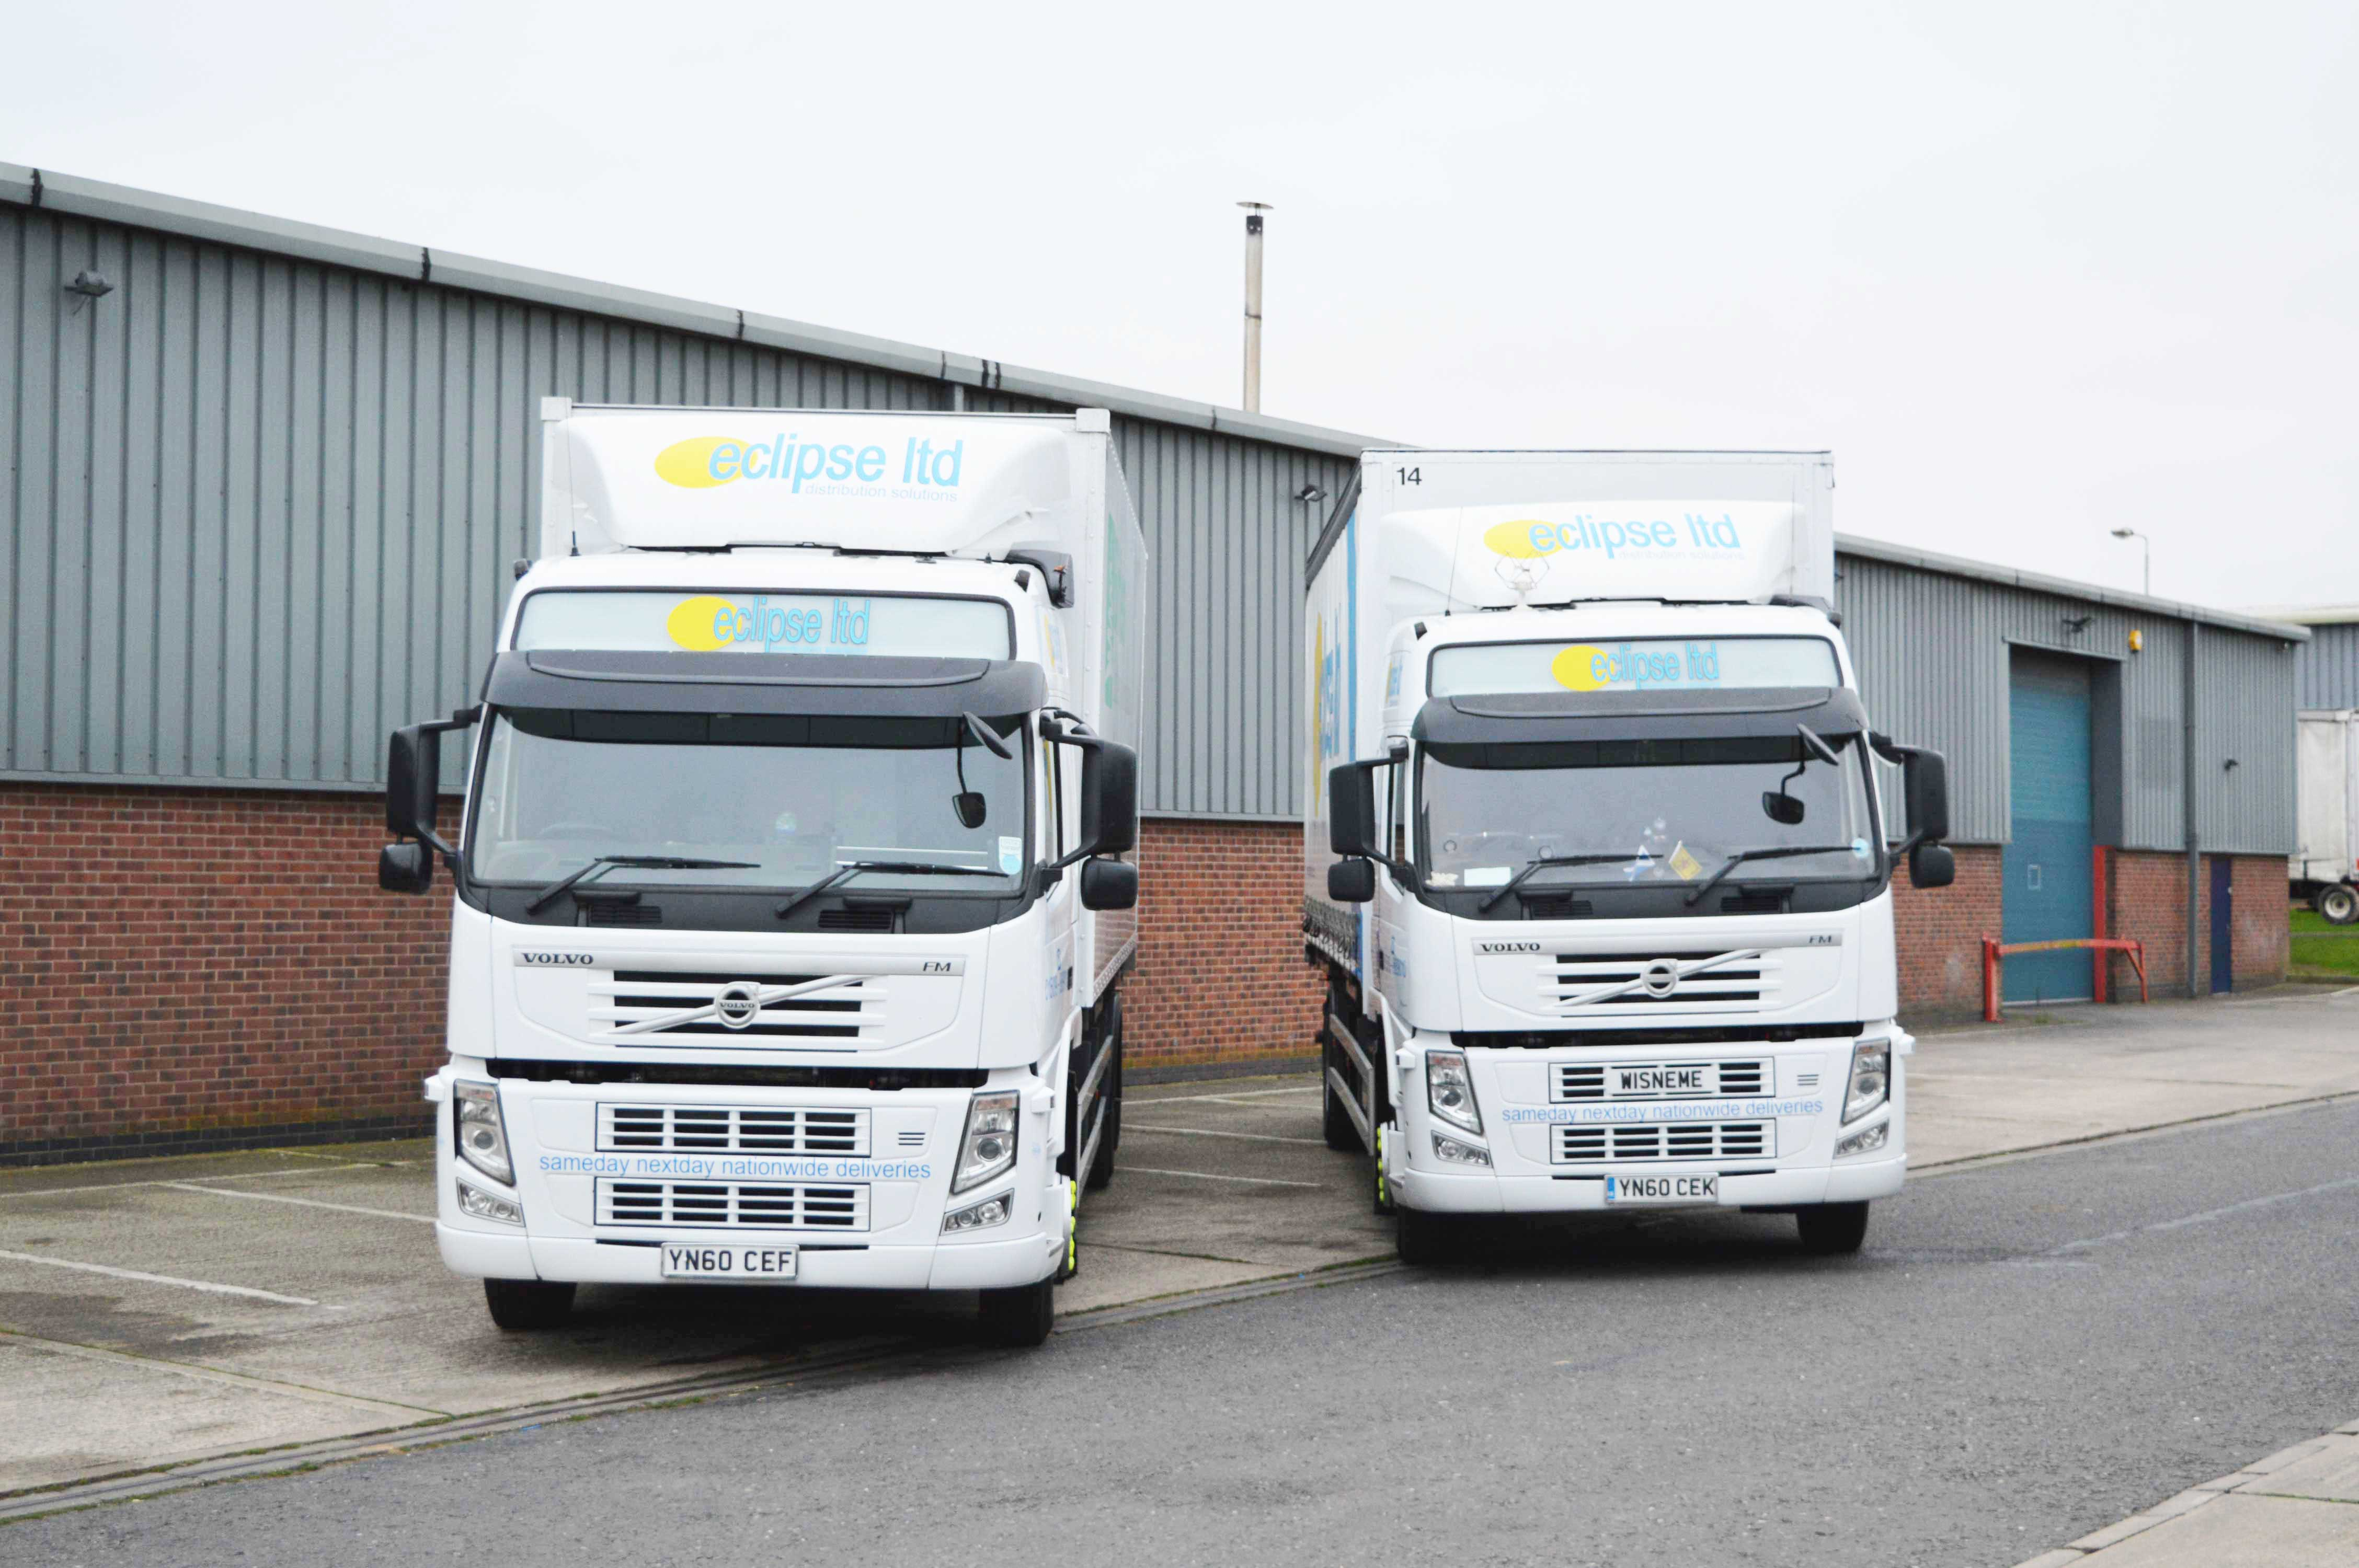 An image of two Volvo lorries.